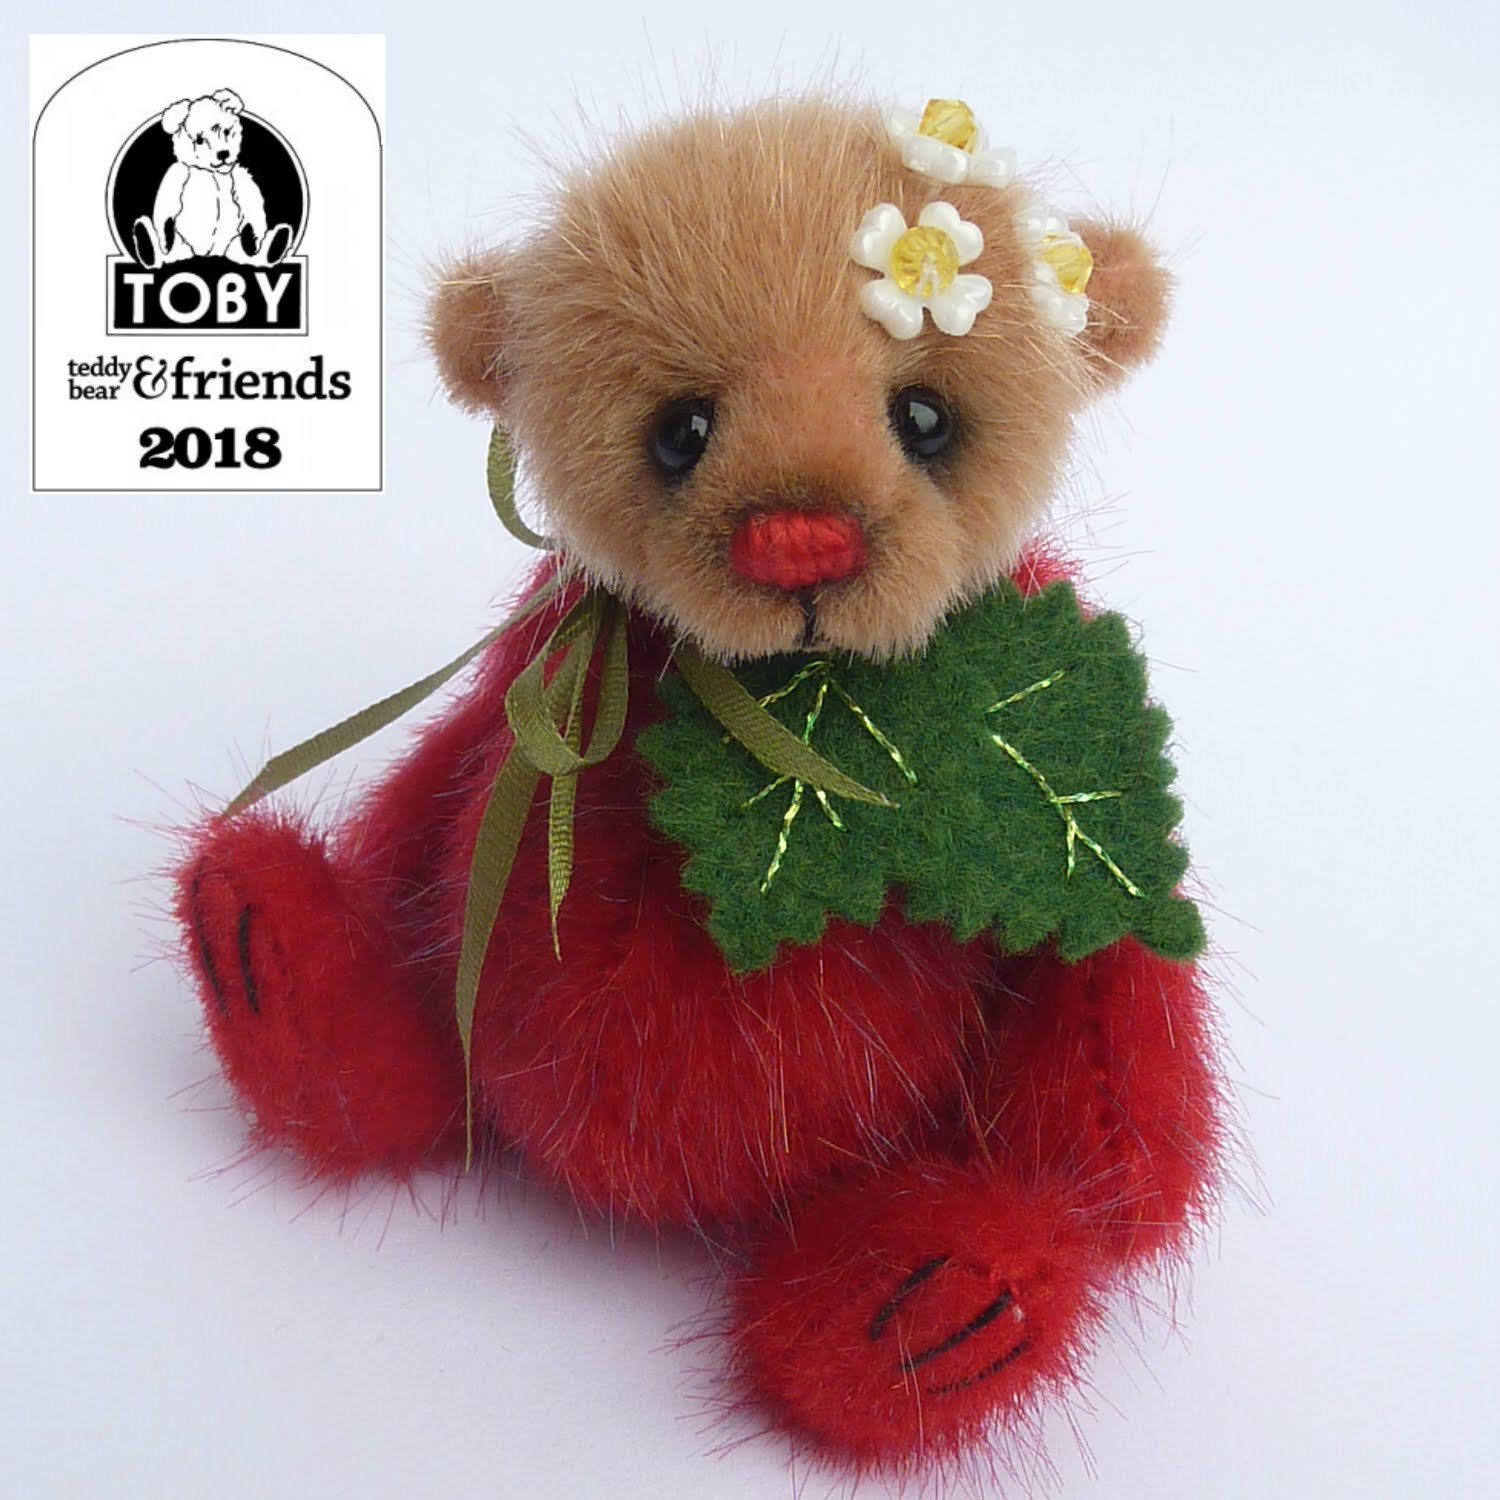 Toby Industry Choice Winner 2018